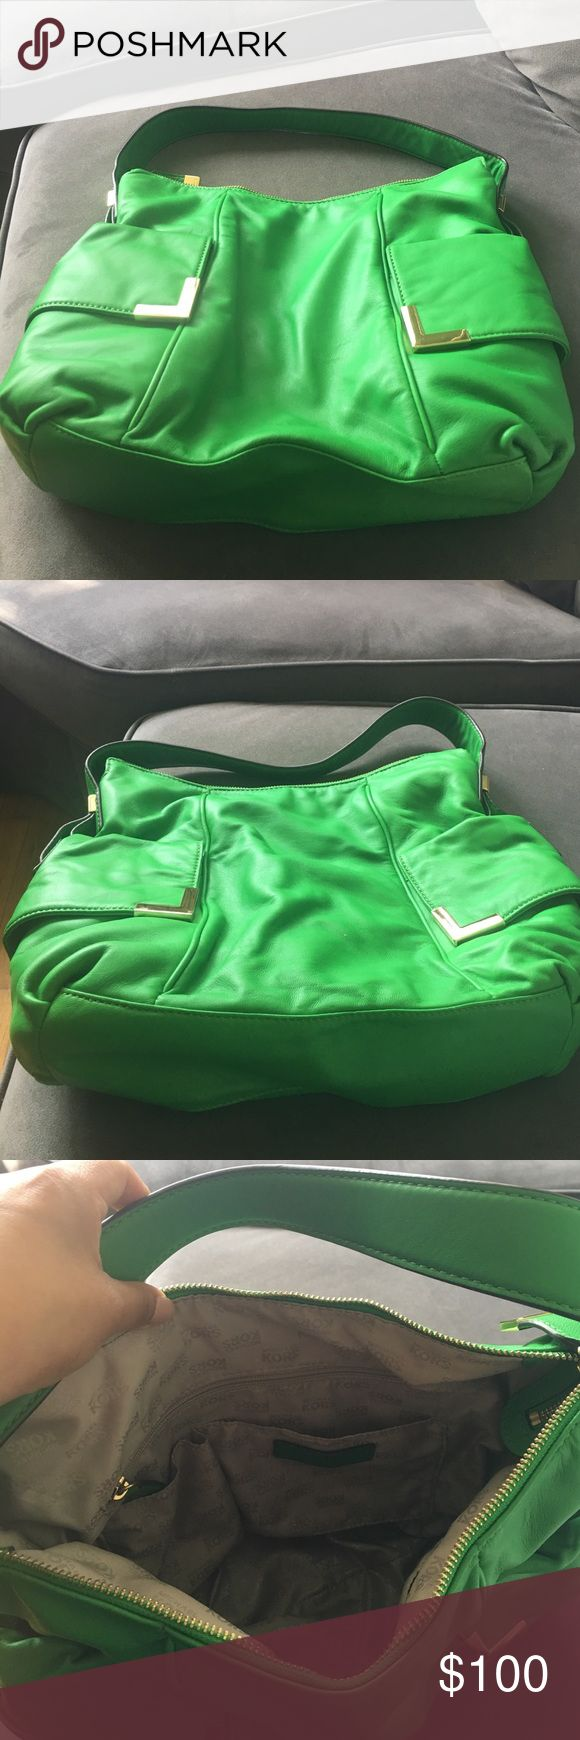 Michael Kors green shoulder bag like new. Michael Kors green shoulder bag like new. Perfect for the summer, to scratches or stains, used 3 times. Michael Kors Bags Shoulder Bags